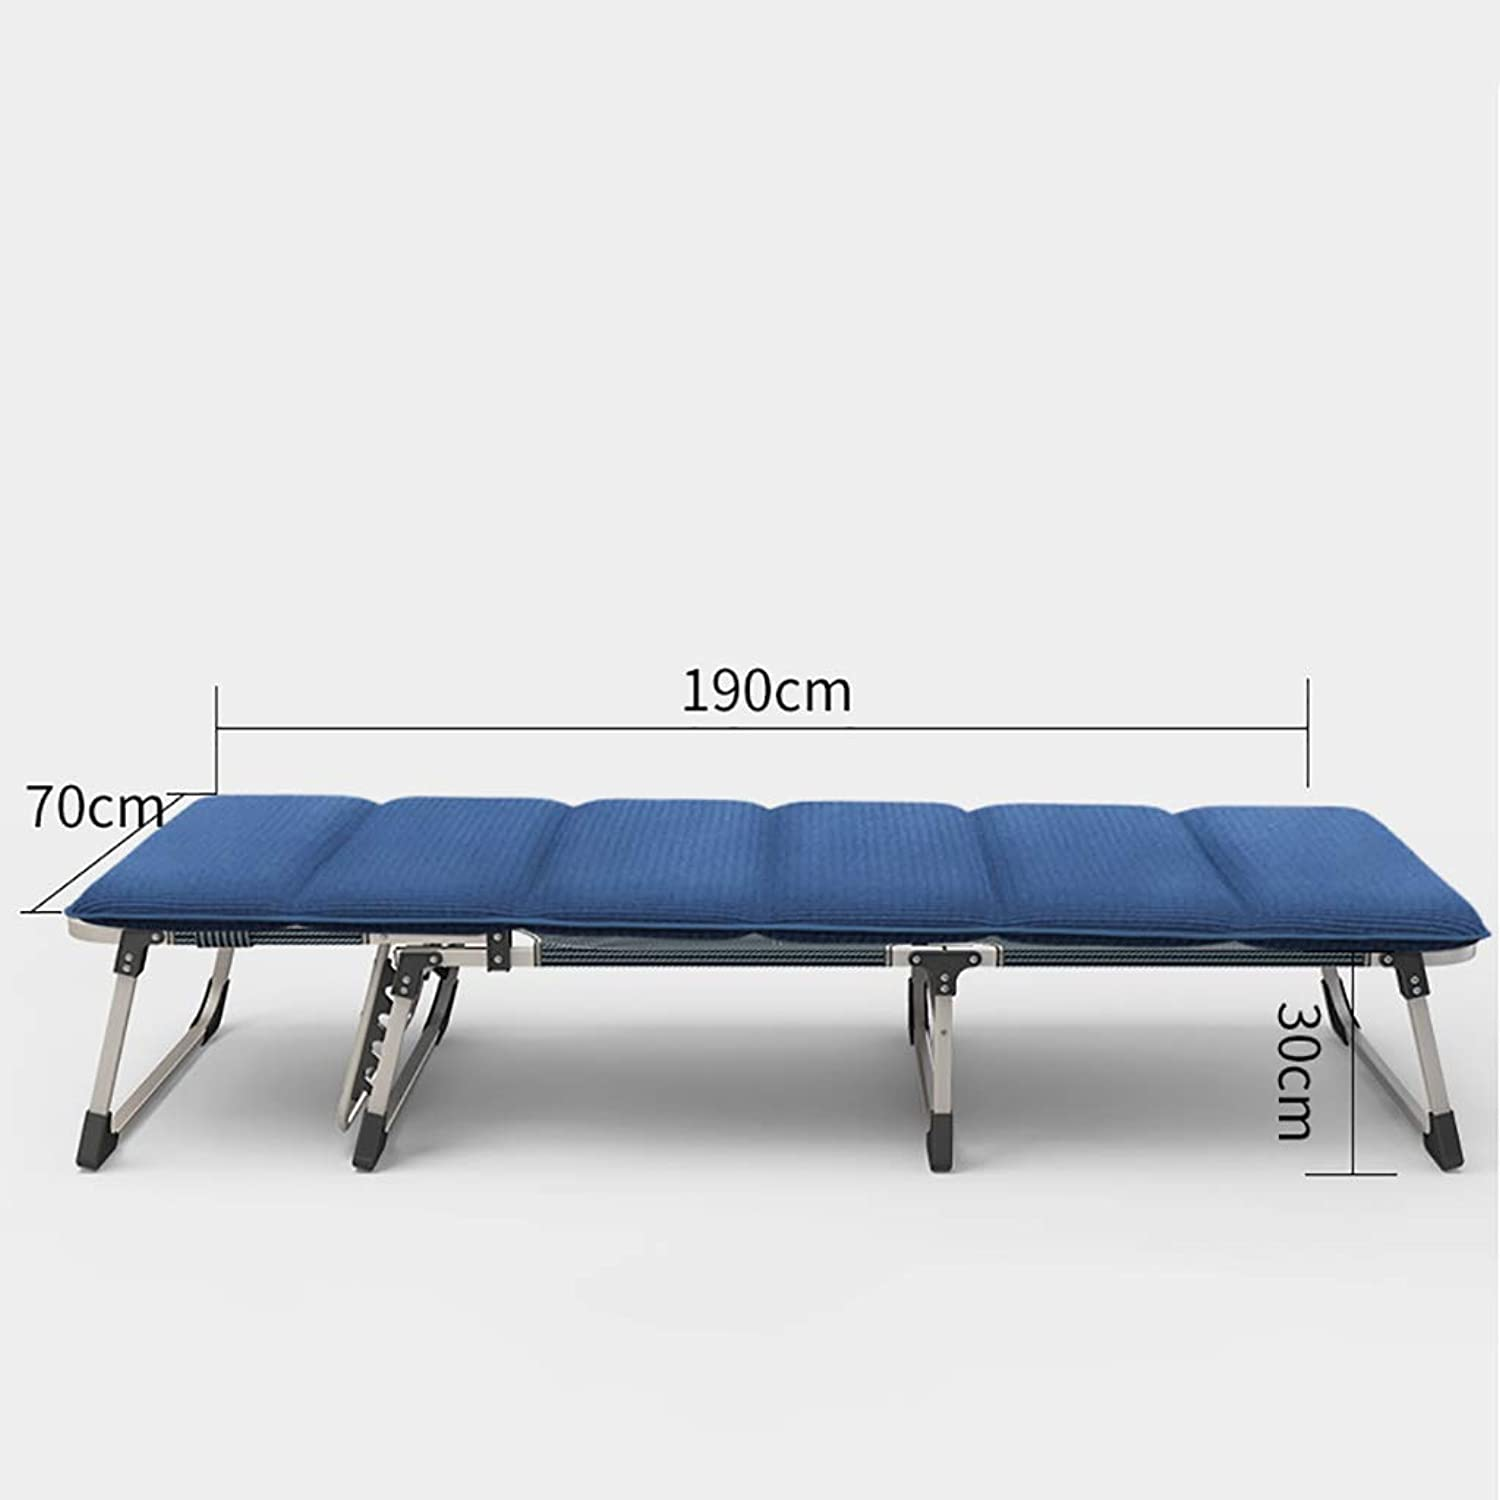 Steel Frame Folding Bed  1680D Oxford Fabric Beach Bed Pool Bed(30  70  190cm) (color   C)